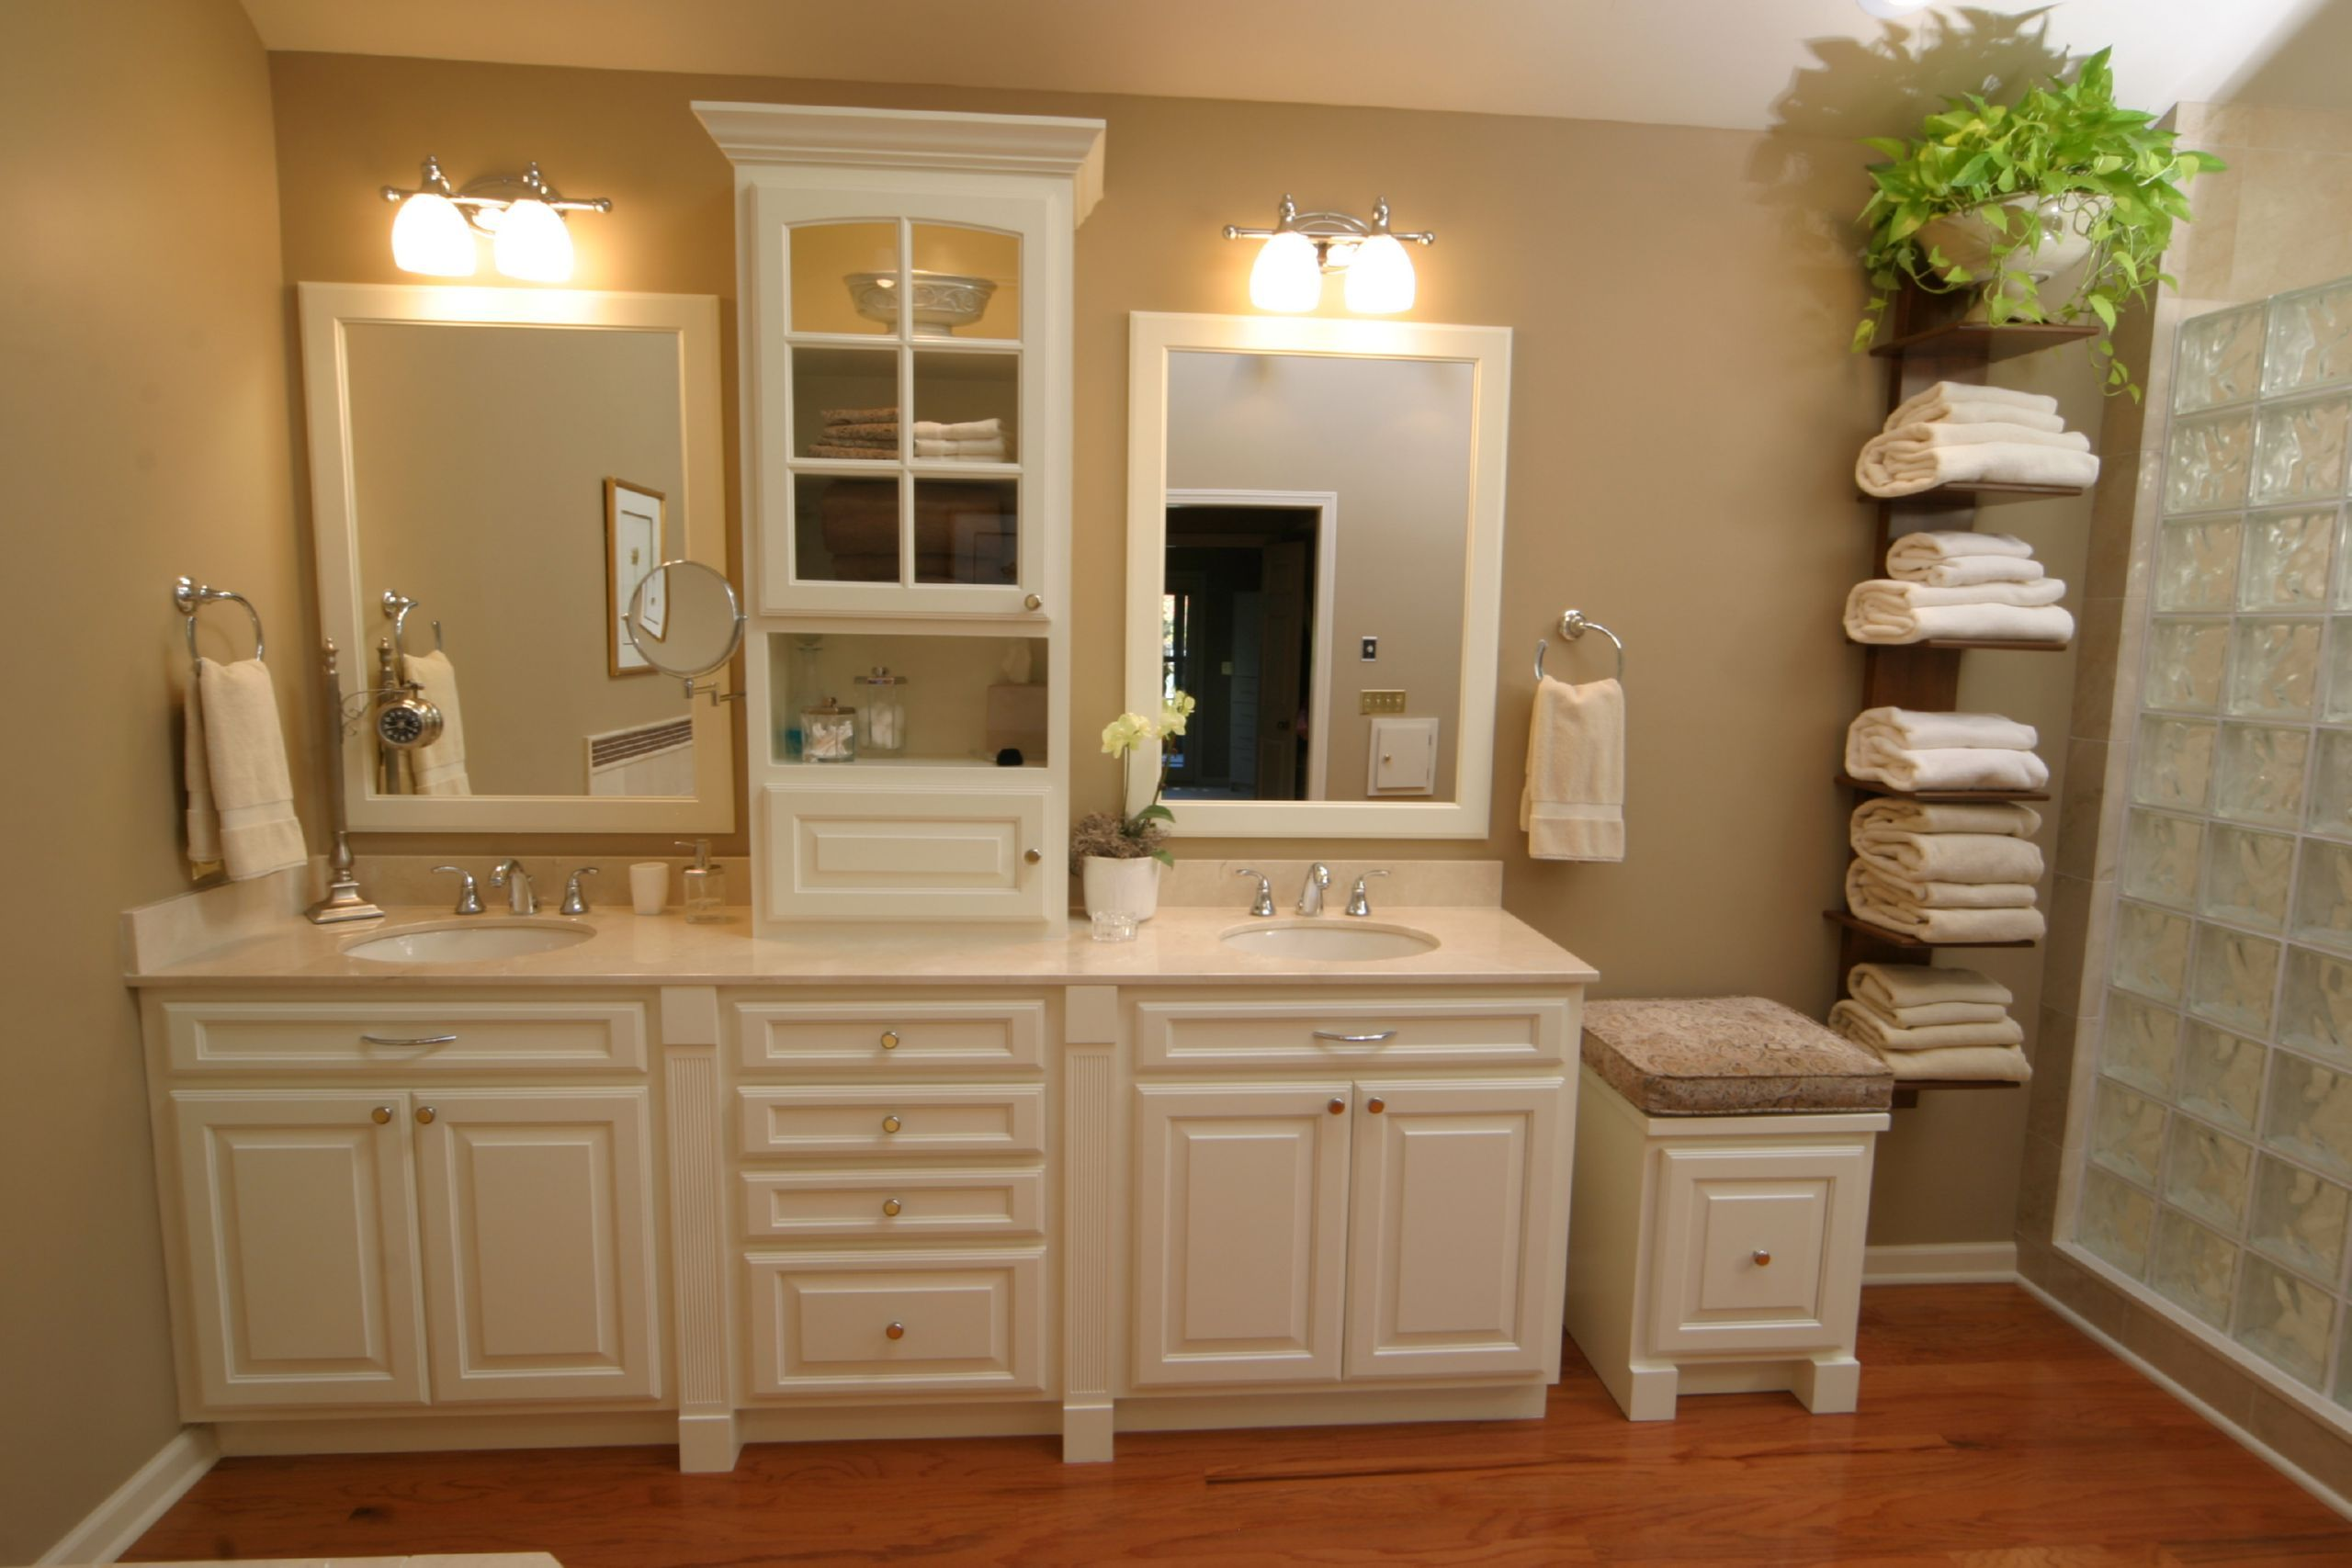 Bathroom Remodeling Tips Bathroom Remodel Columbus Columbus - Cost effective bathroom remodel for bathroom decor ideas